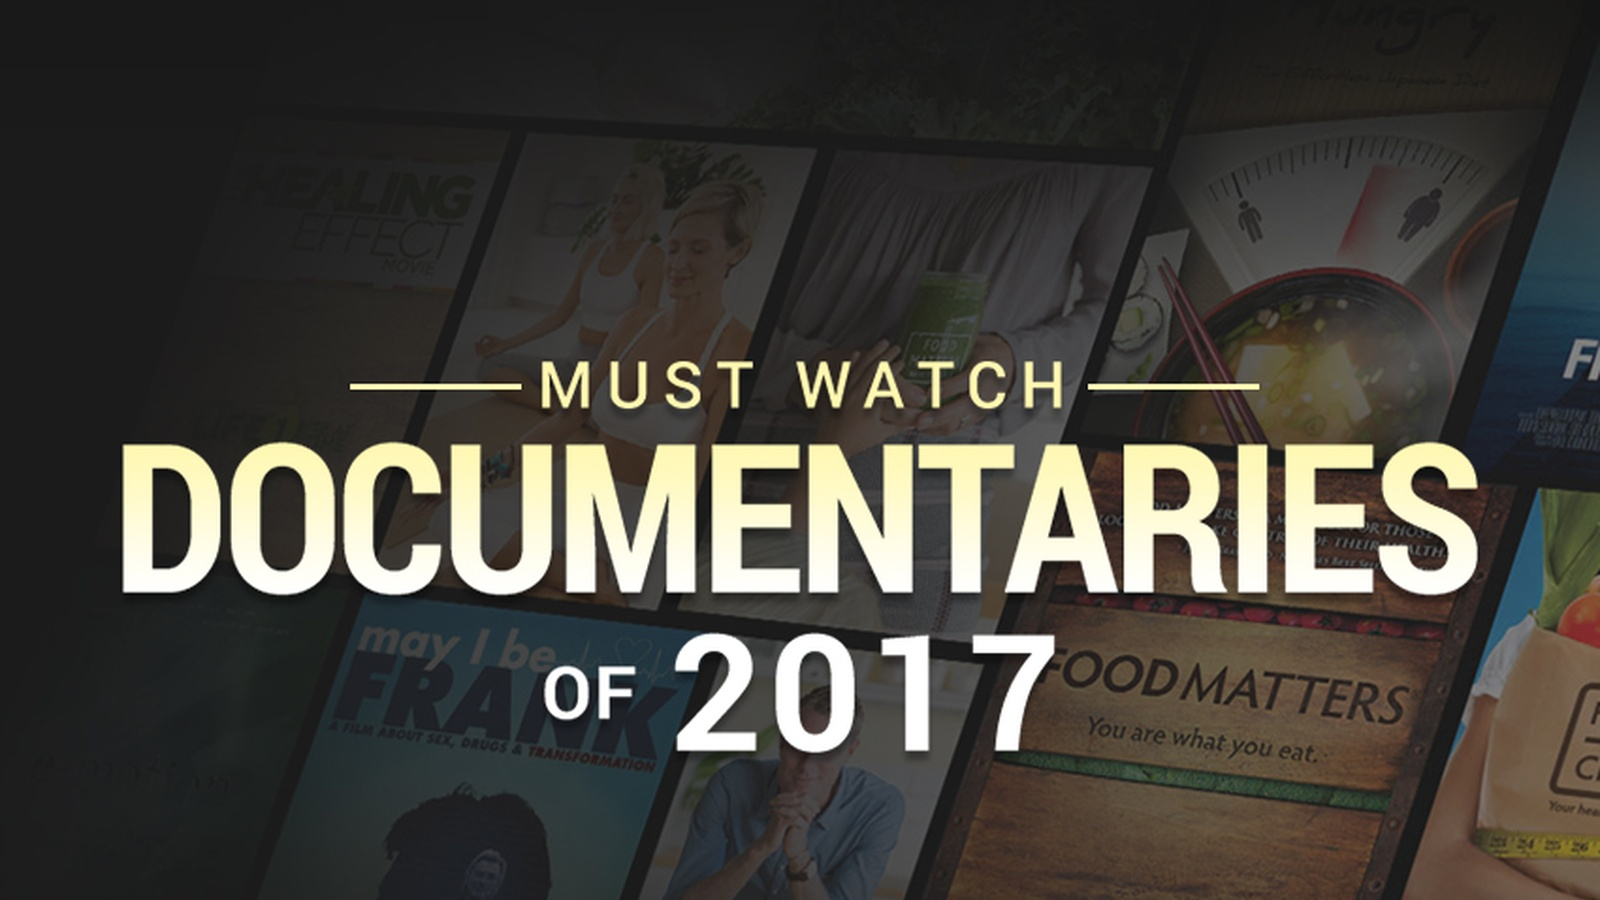 5 Must Watch Documentaries of 2017